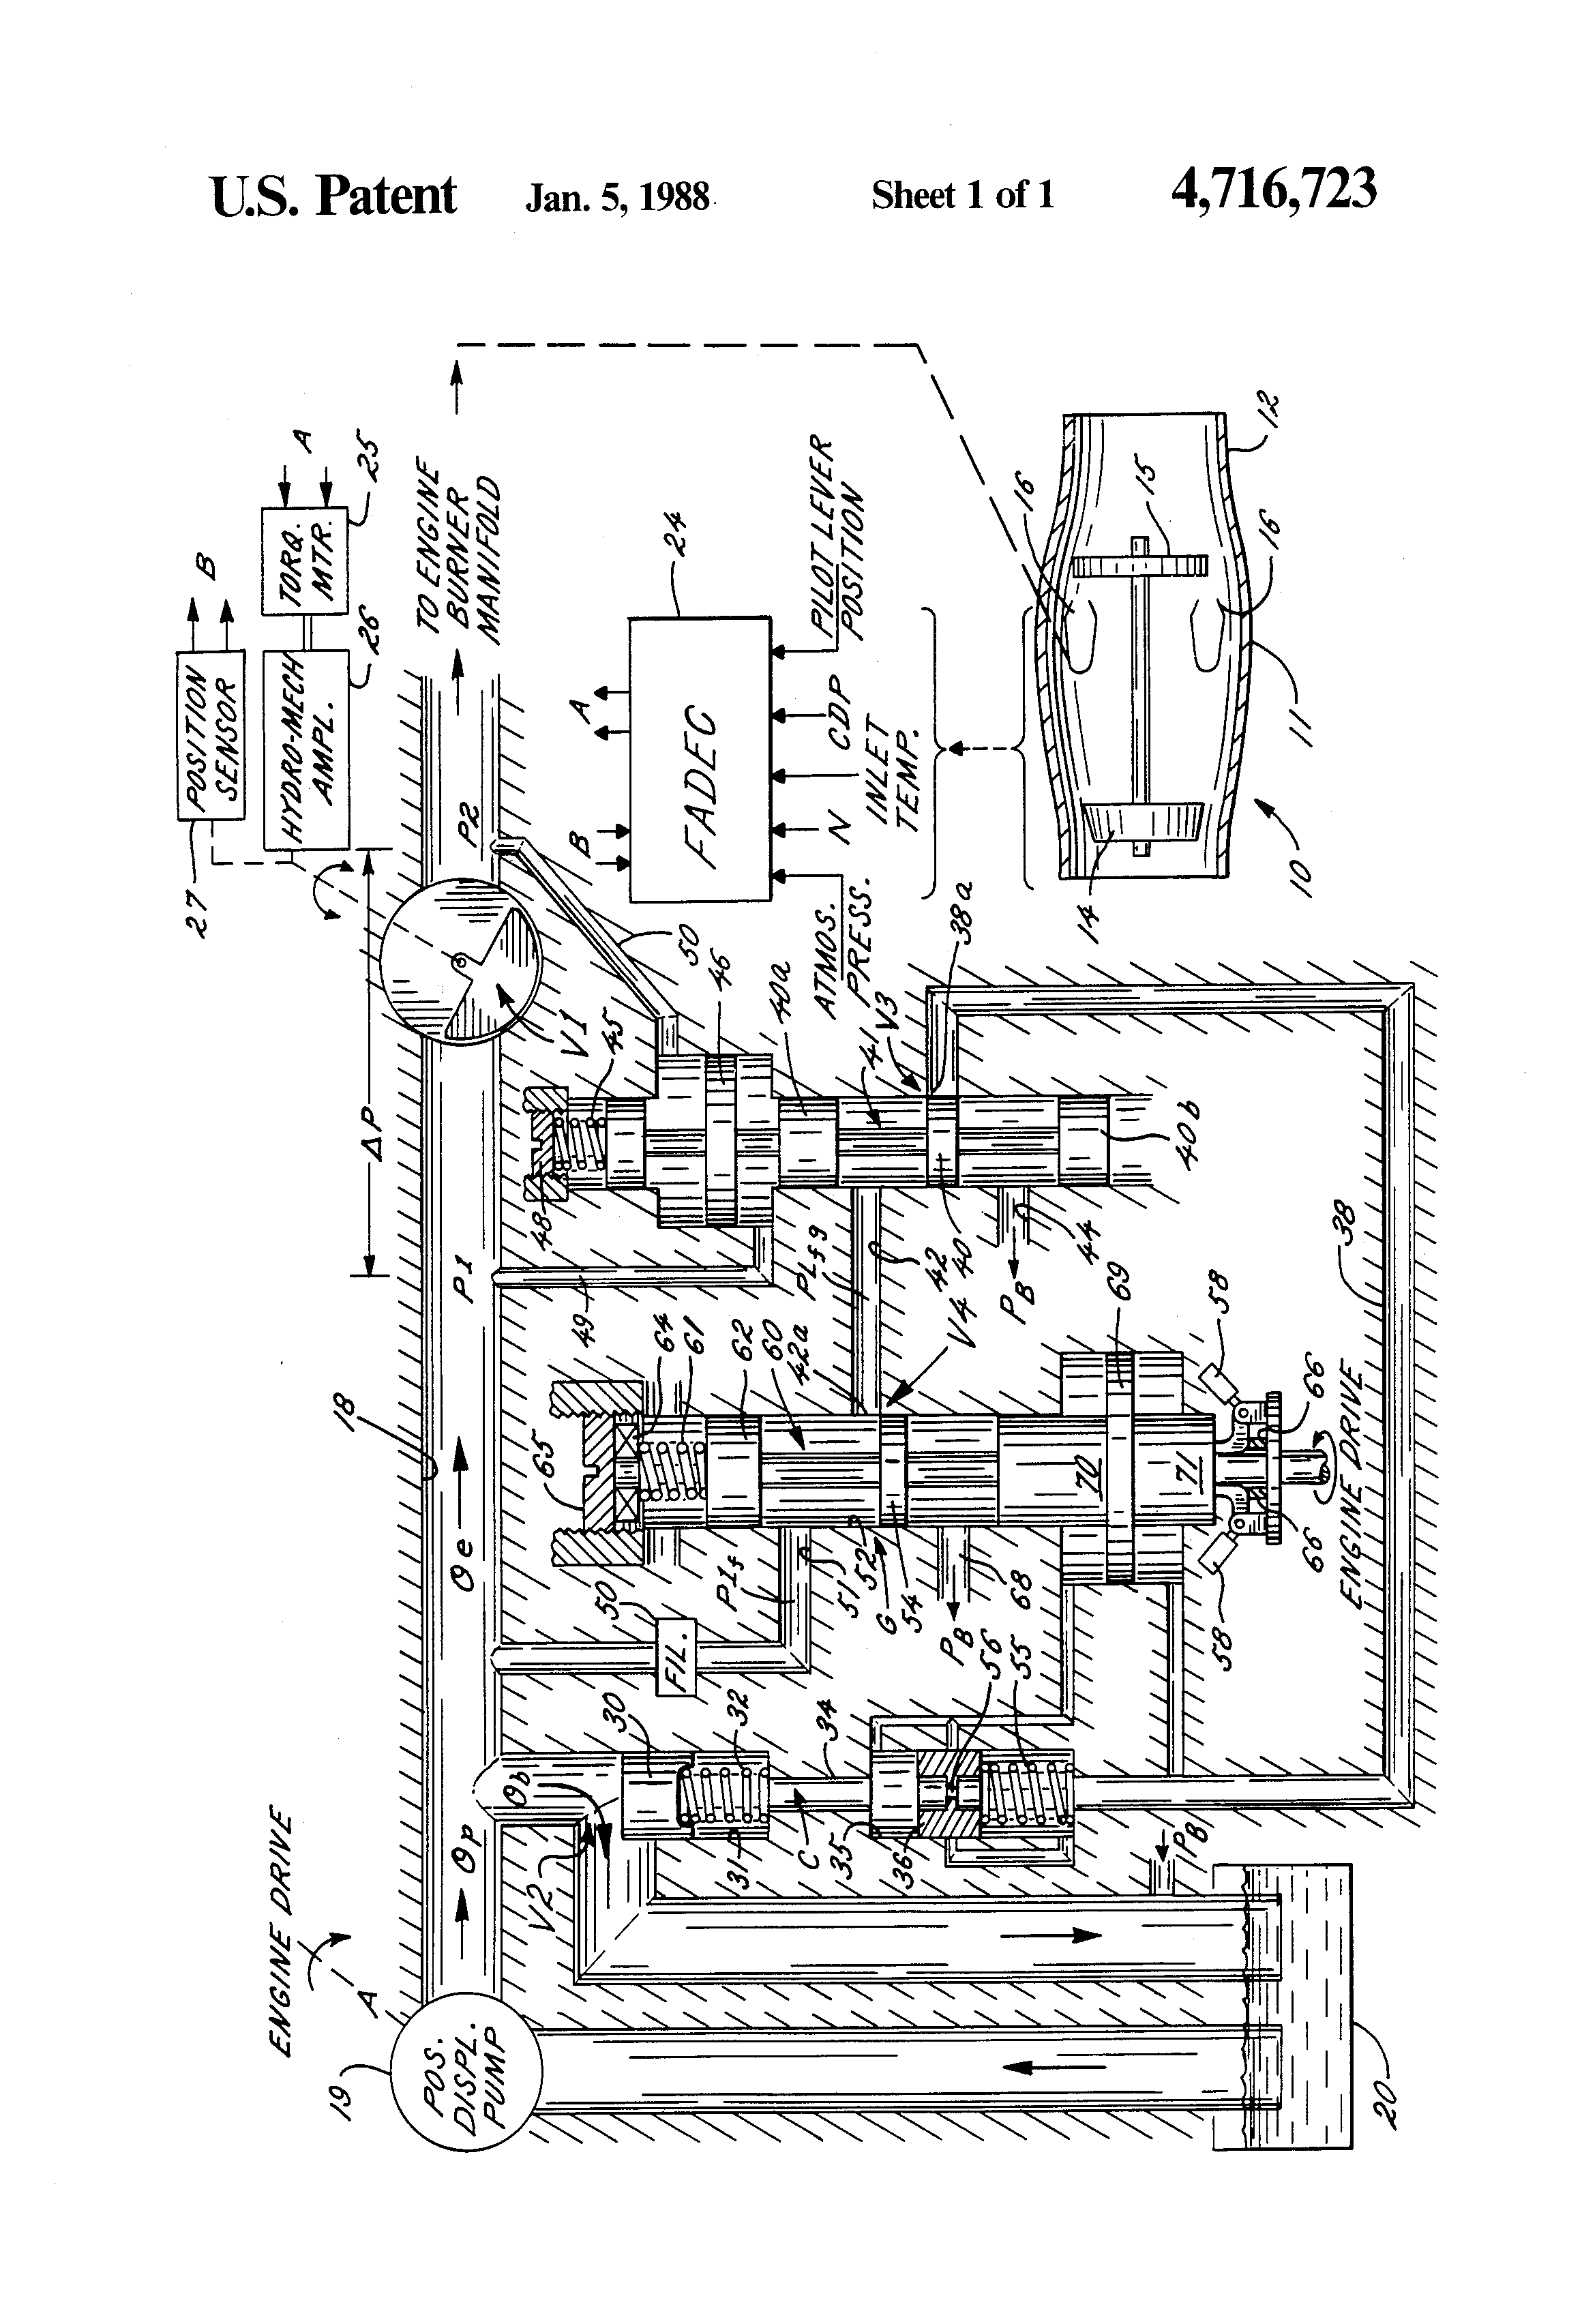 Patent US Fuel controls for gas turbine engines Google